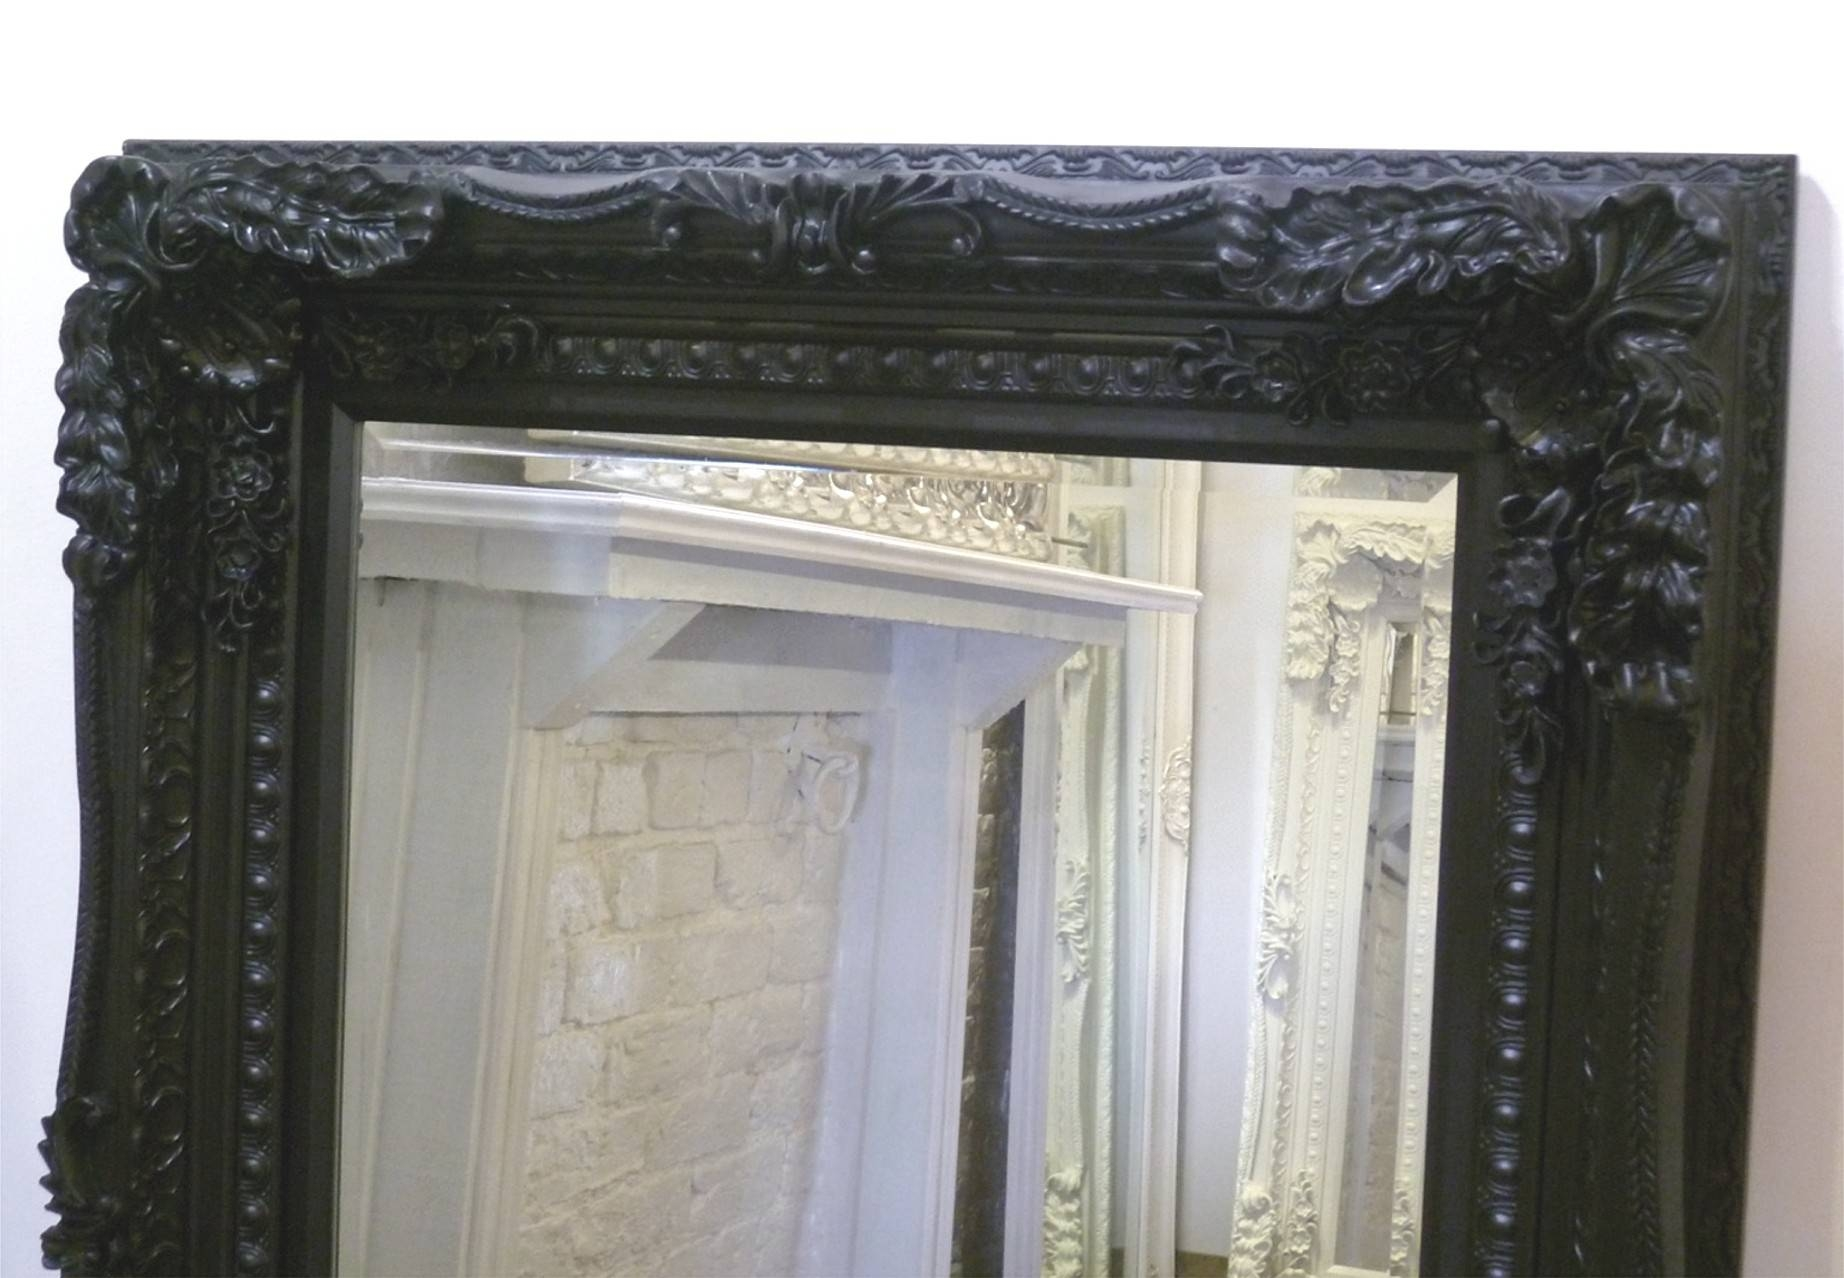 The Best Value Black Chelsea Ornate Mirrors Online. pertaining to Black Ornate Mirrors (Image 11 of 15)